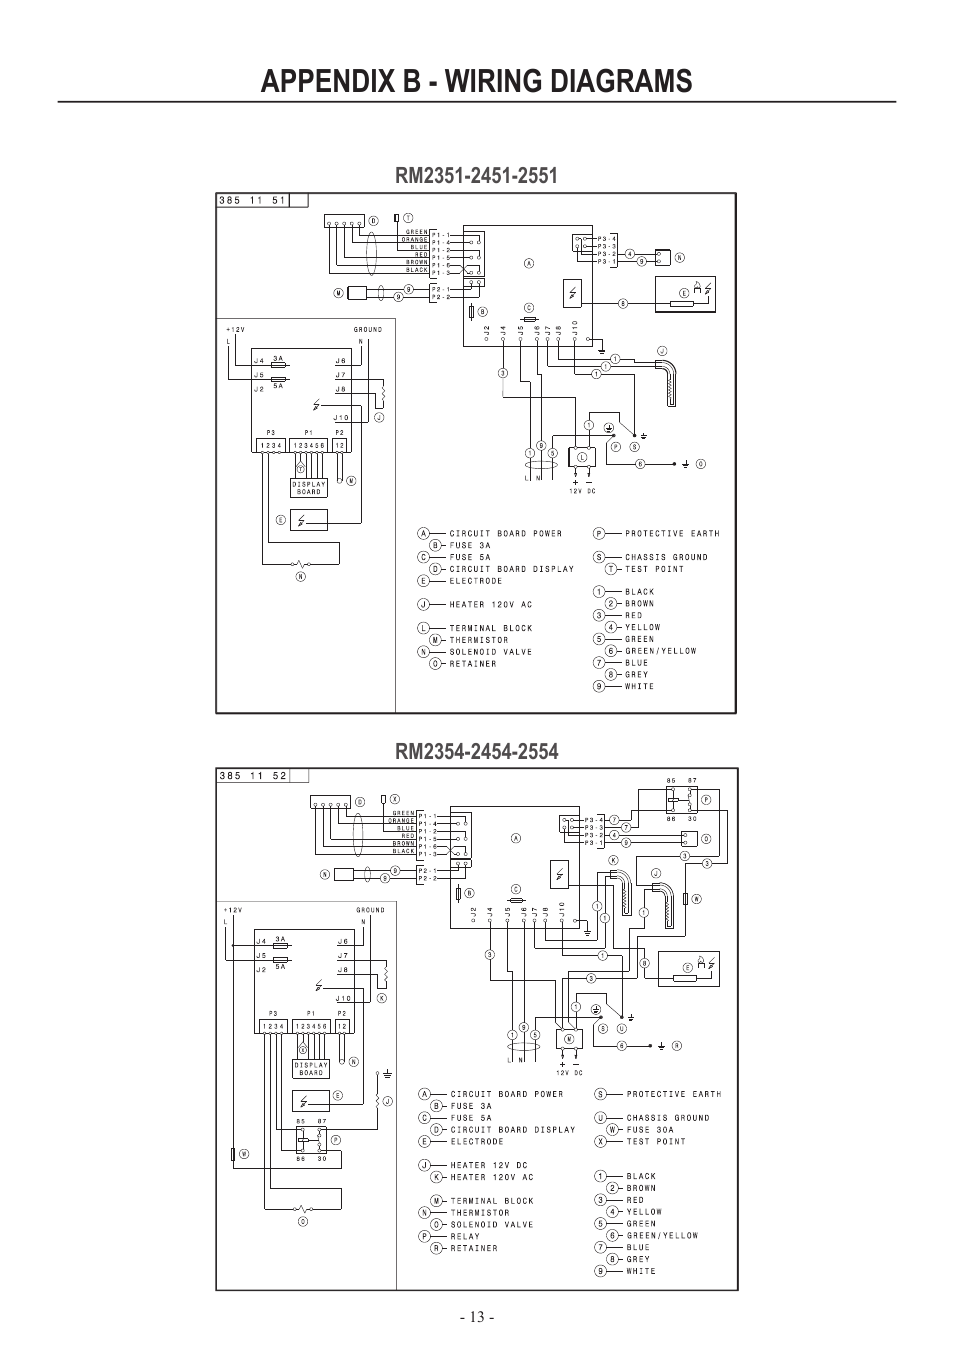 Dometic Rm2852 Wiring Diagram : 29 Wiring Diagram Images